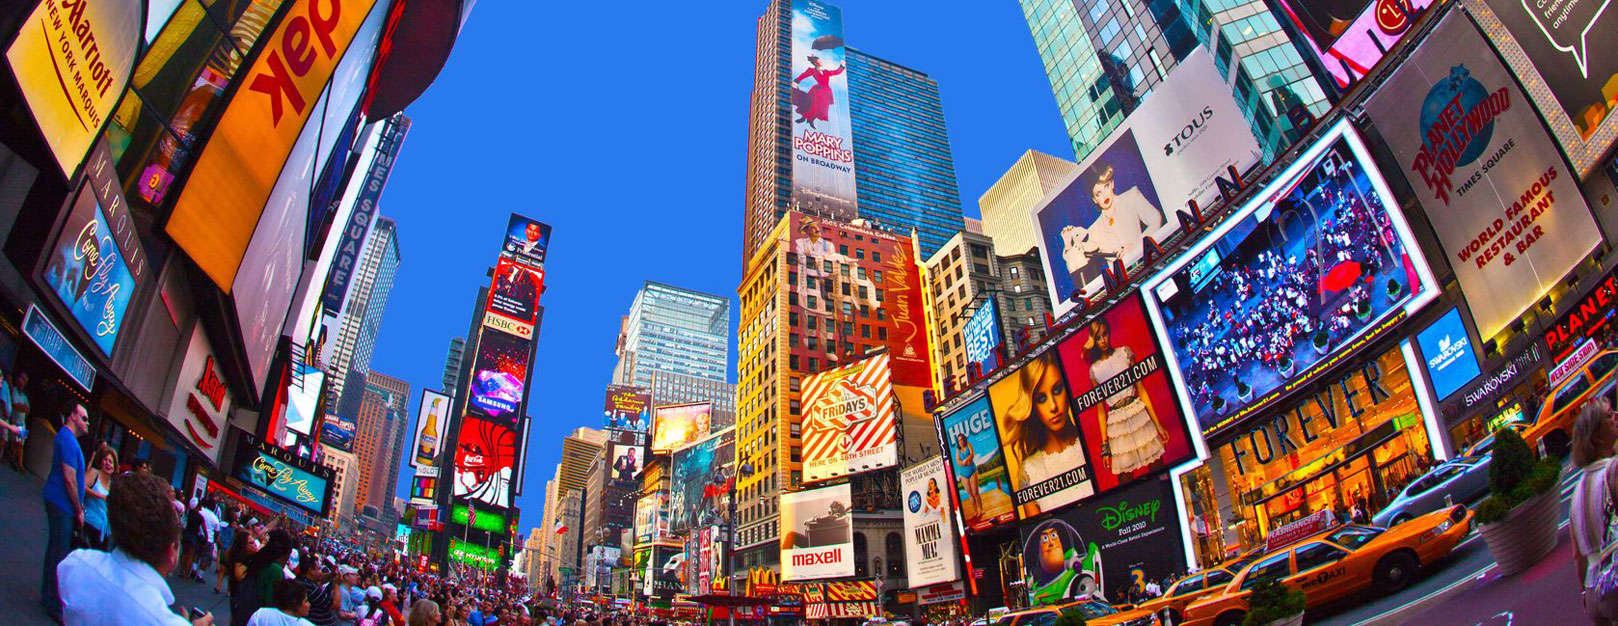 Times Square - OOH Audits